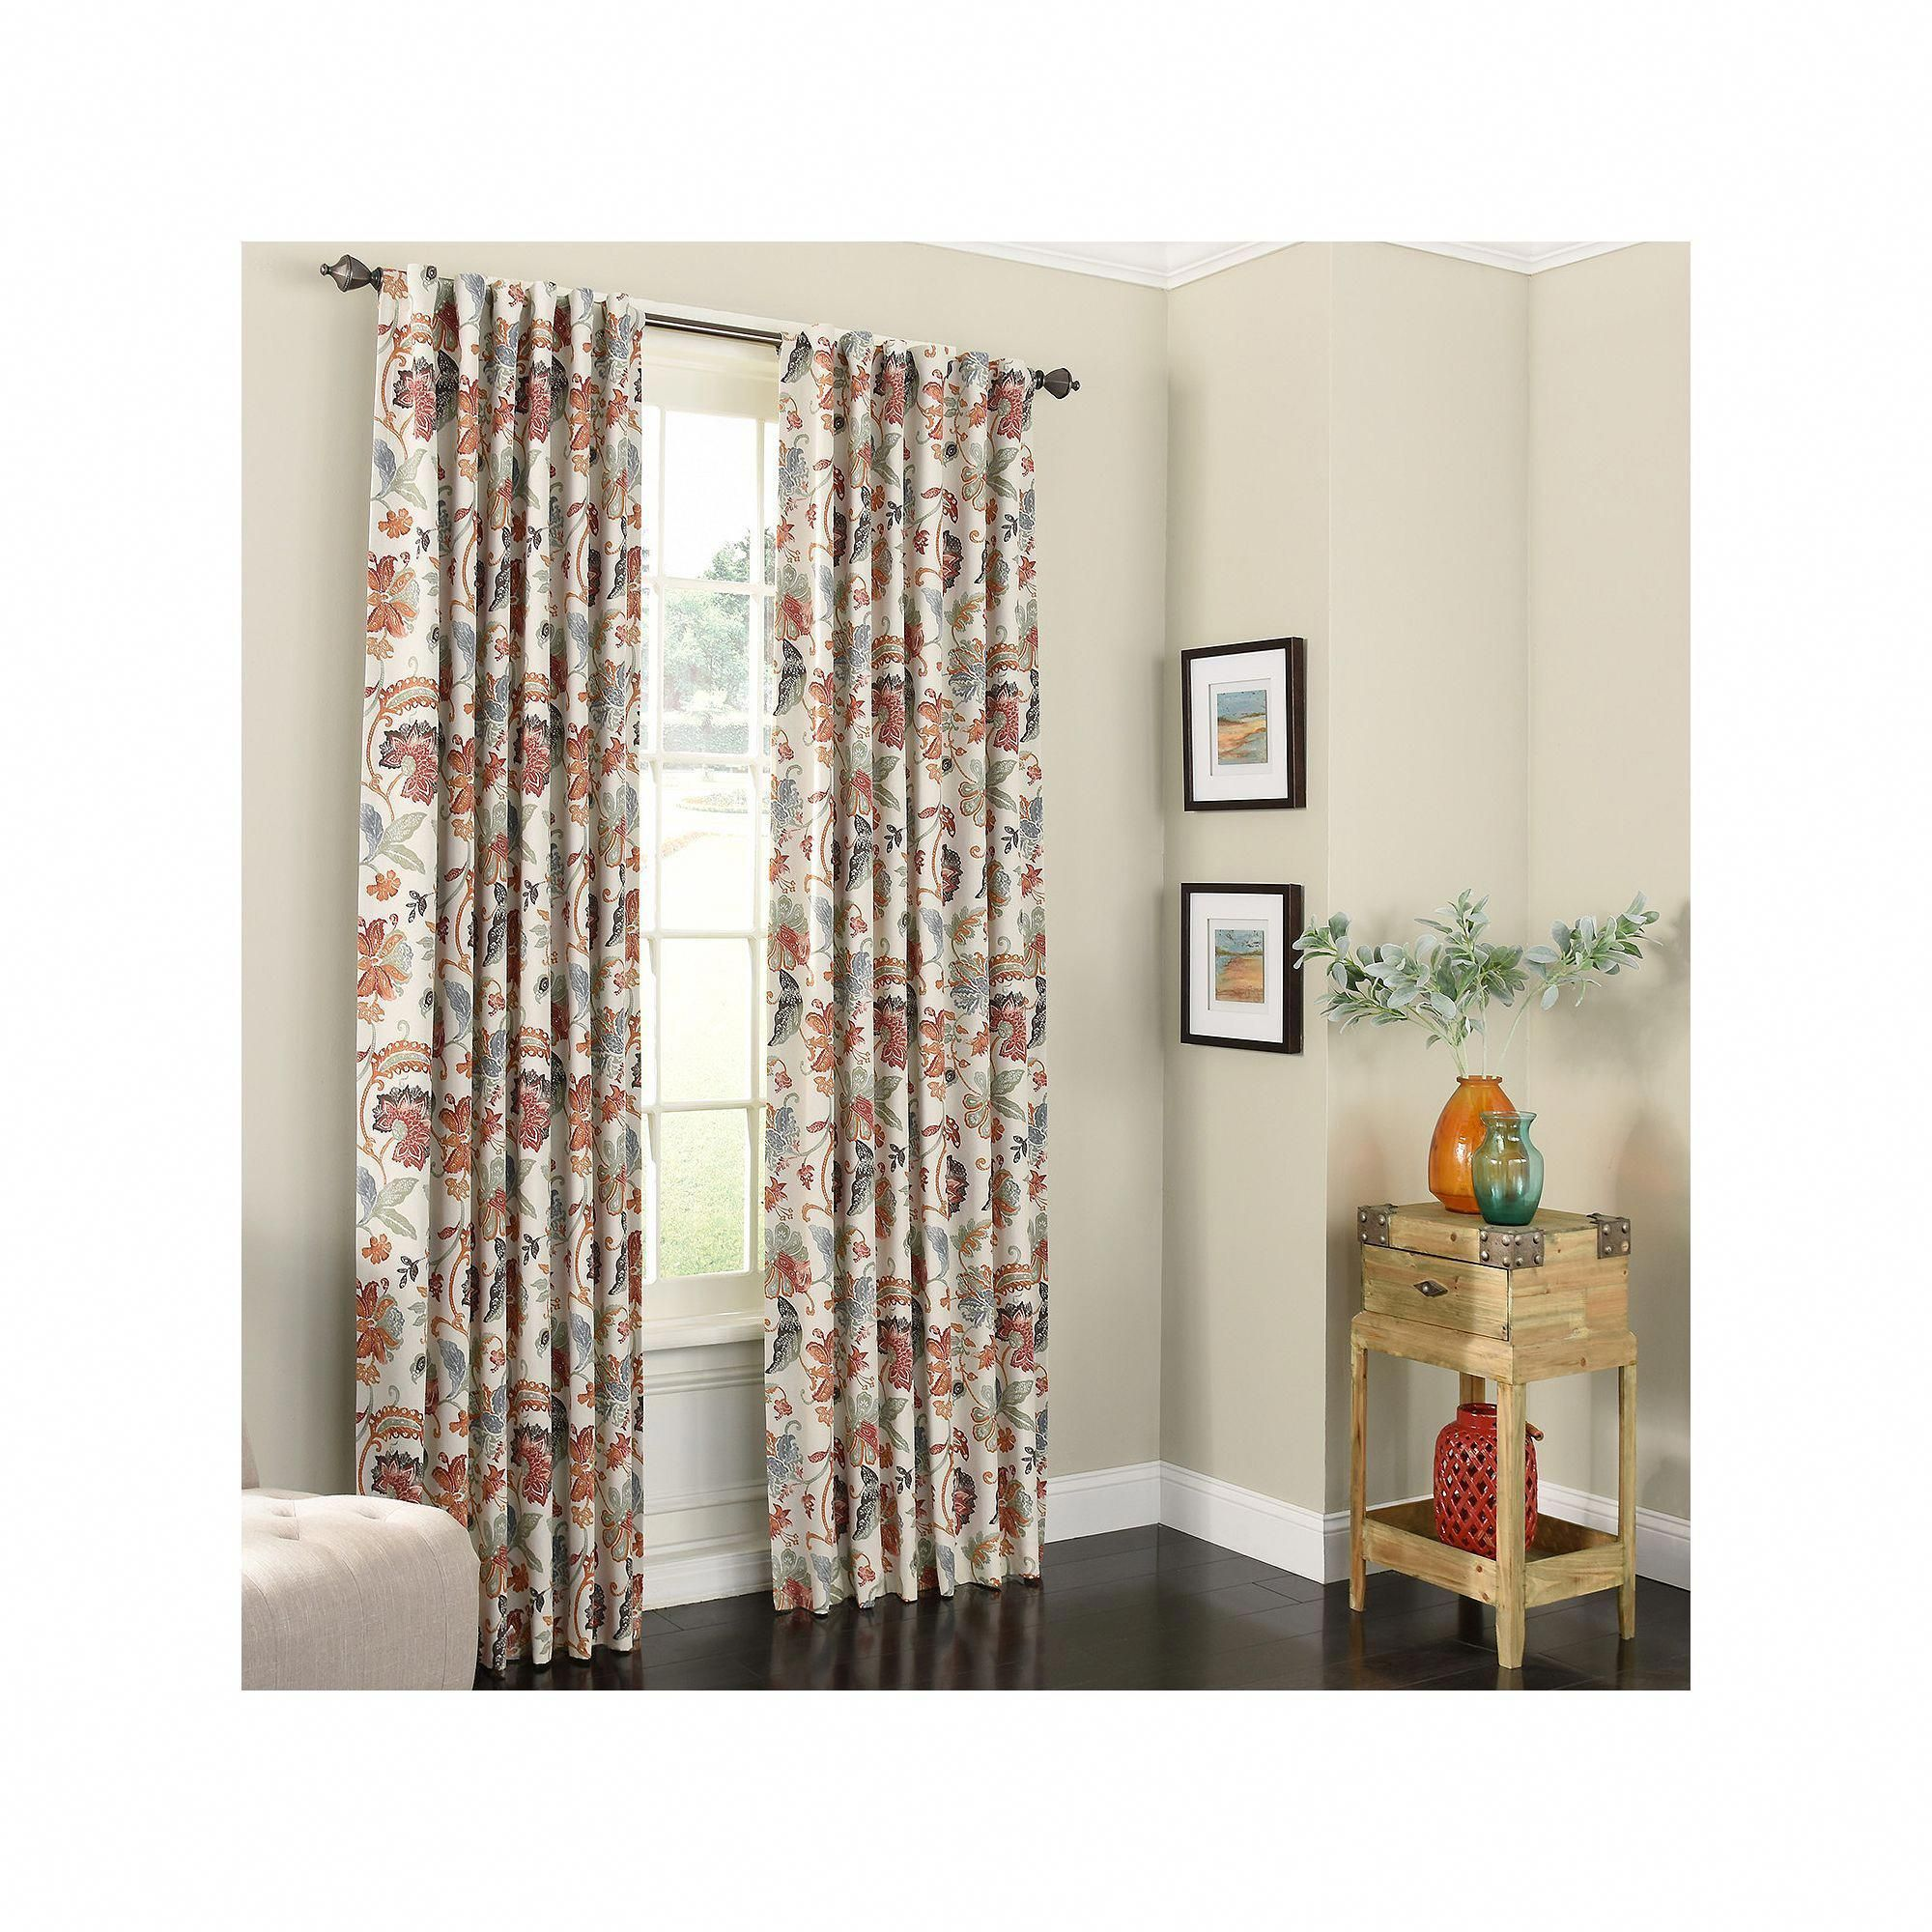 More Blackout Curtains Reviews Cool Curtains Eclipse Curtains Panel Curtains